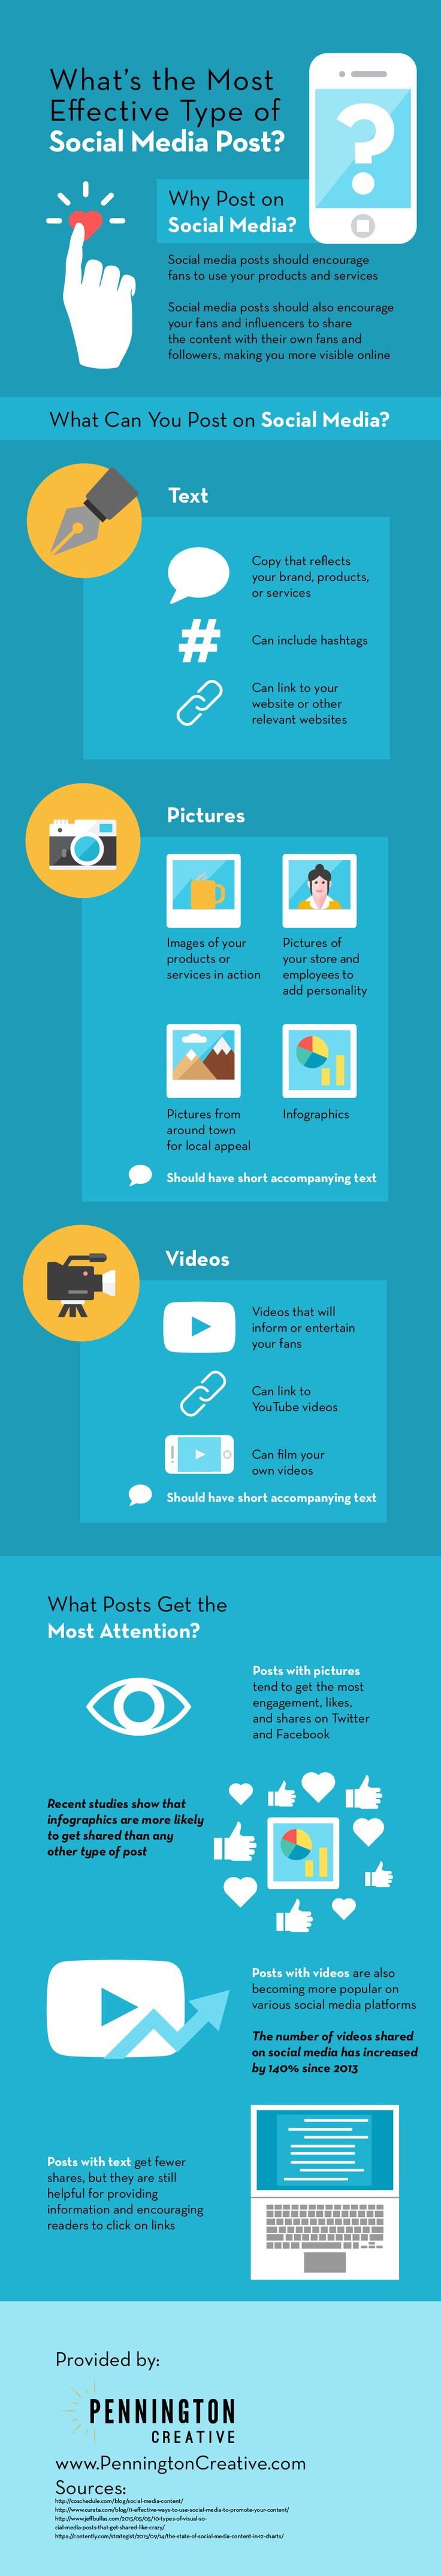 What's the Most Effective Type of Social Media Post? - #infographic